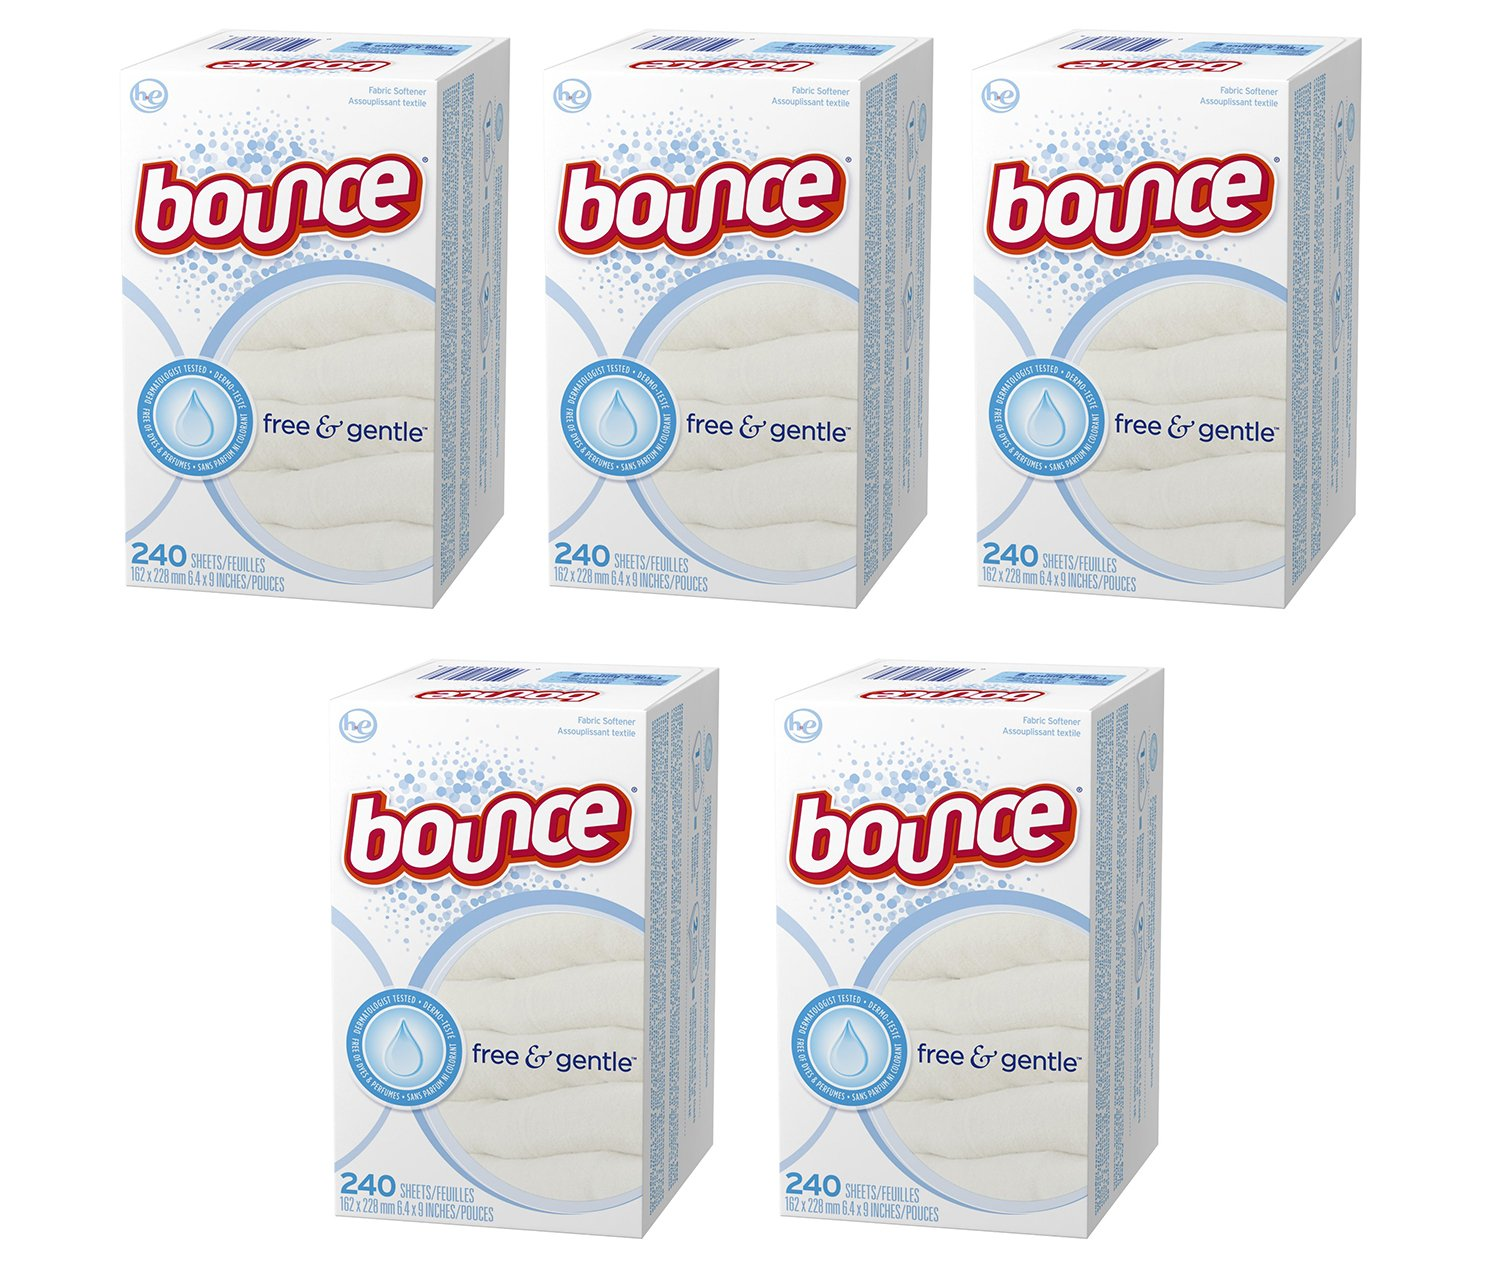 Bounce Fabric Softener hPupo Dryer Sheets Free & Gentle, 240 Count (5 Pack)